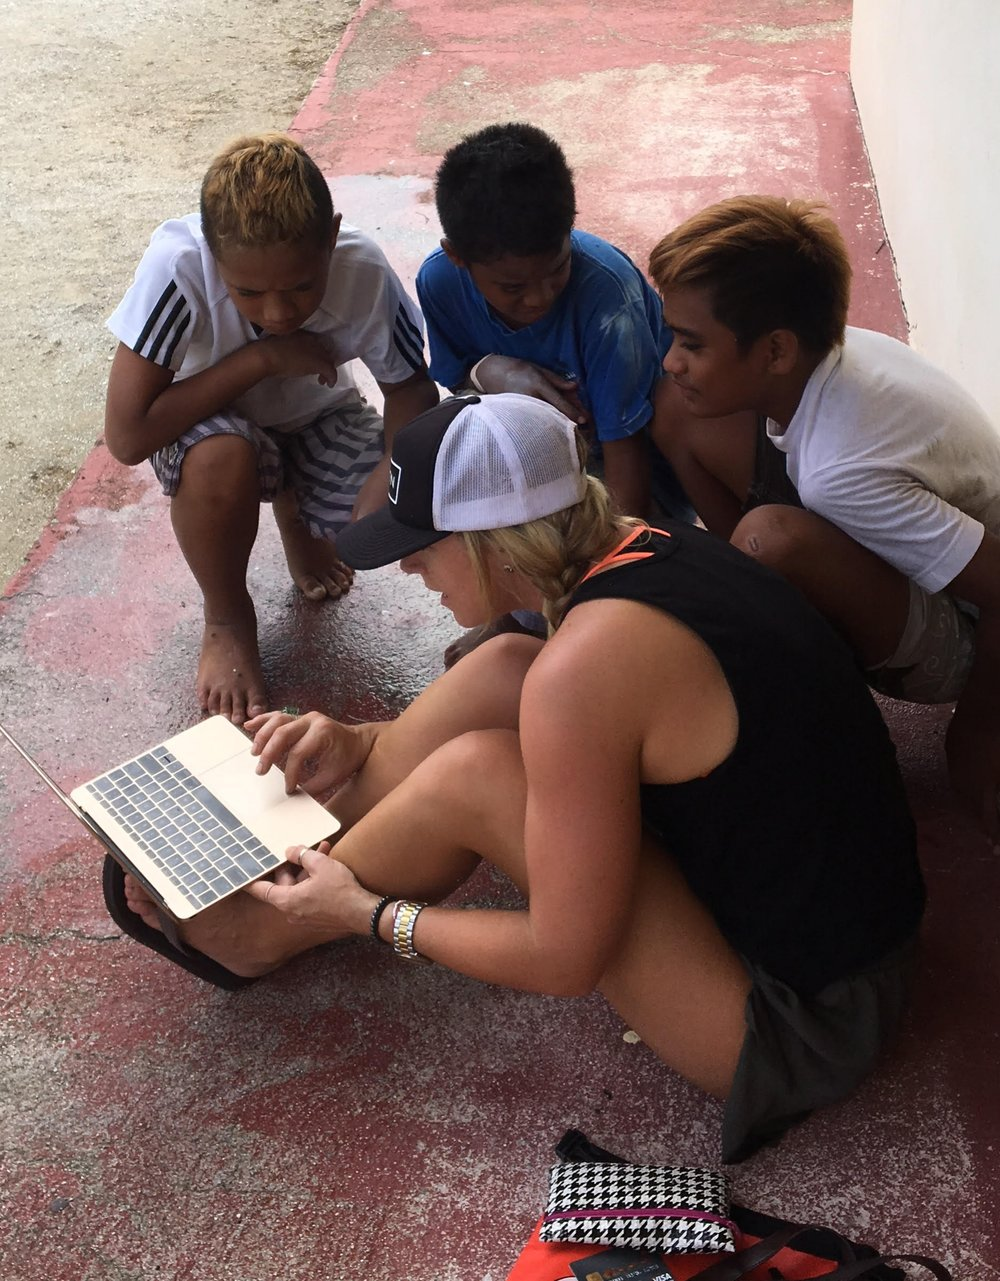 In some of the remote islands of French Polynesia, the only place to get wifi is on the stoop of the local post office. My new friends and I sang some Edward Sharpe and checked out my photos from New Zealand despite the language barrier.